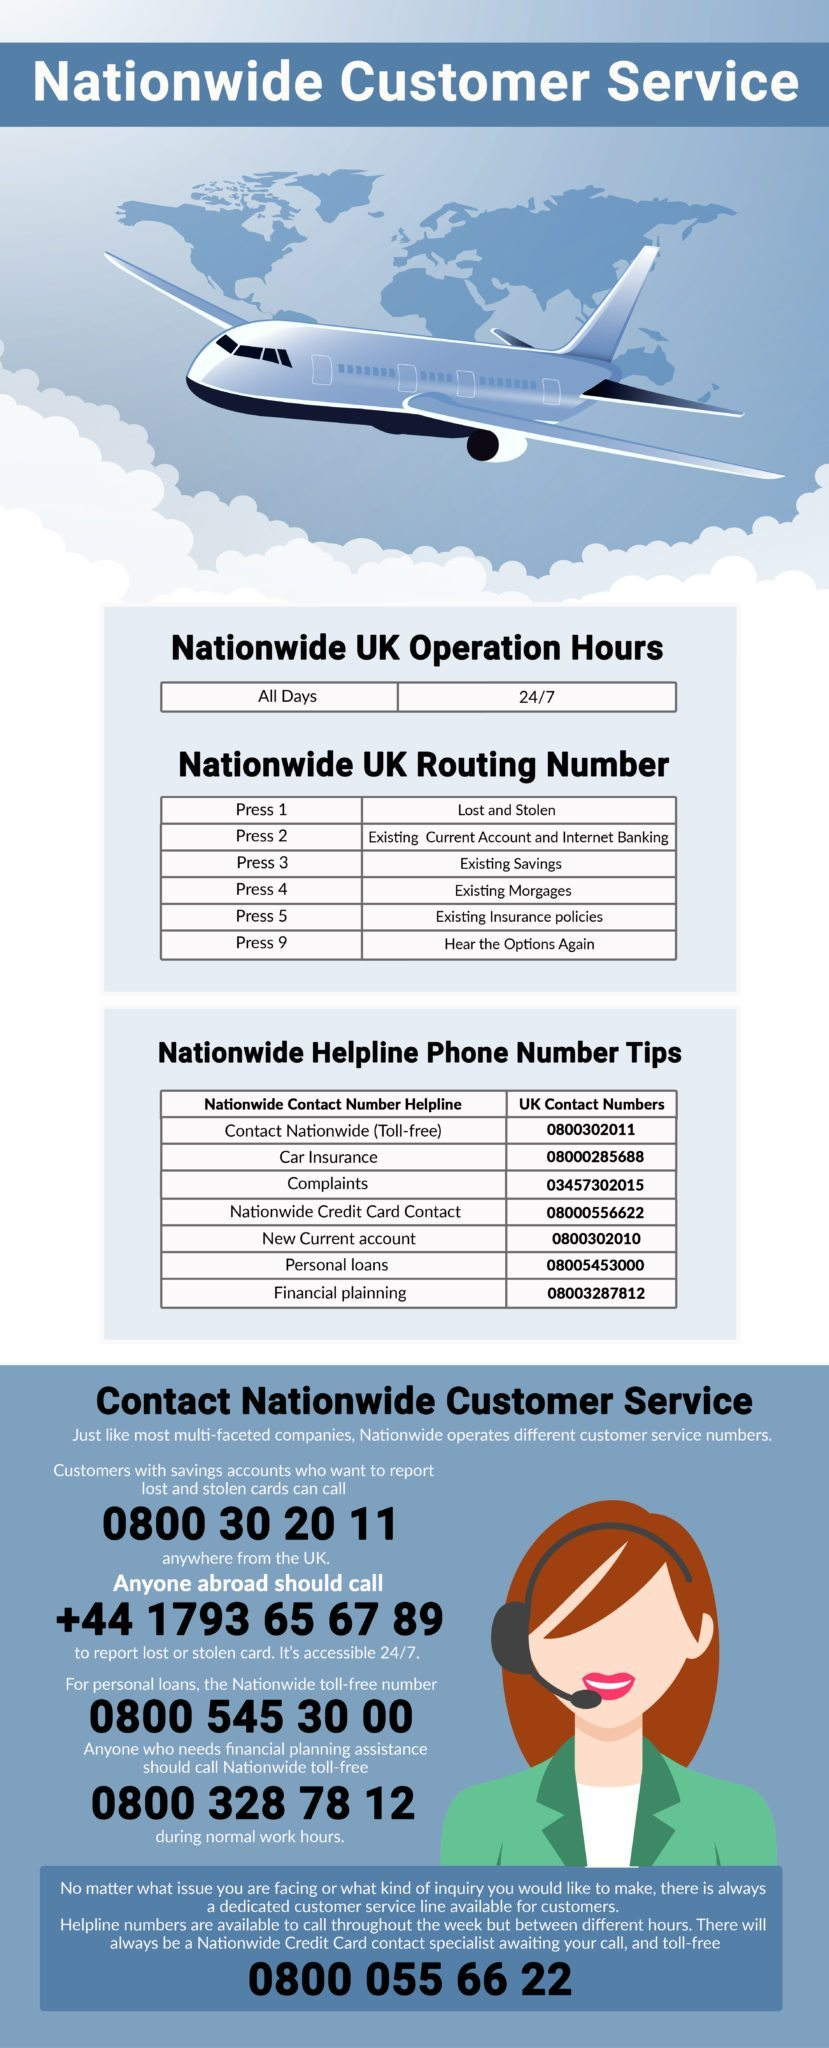 nationwide insurance 24 hr number  | Contact Us for Insurance Questions - Nationwide